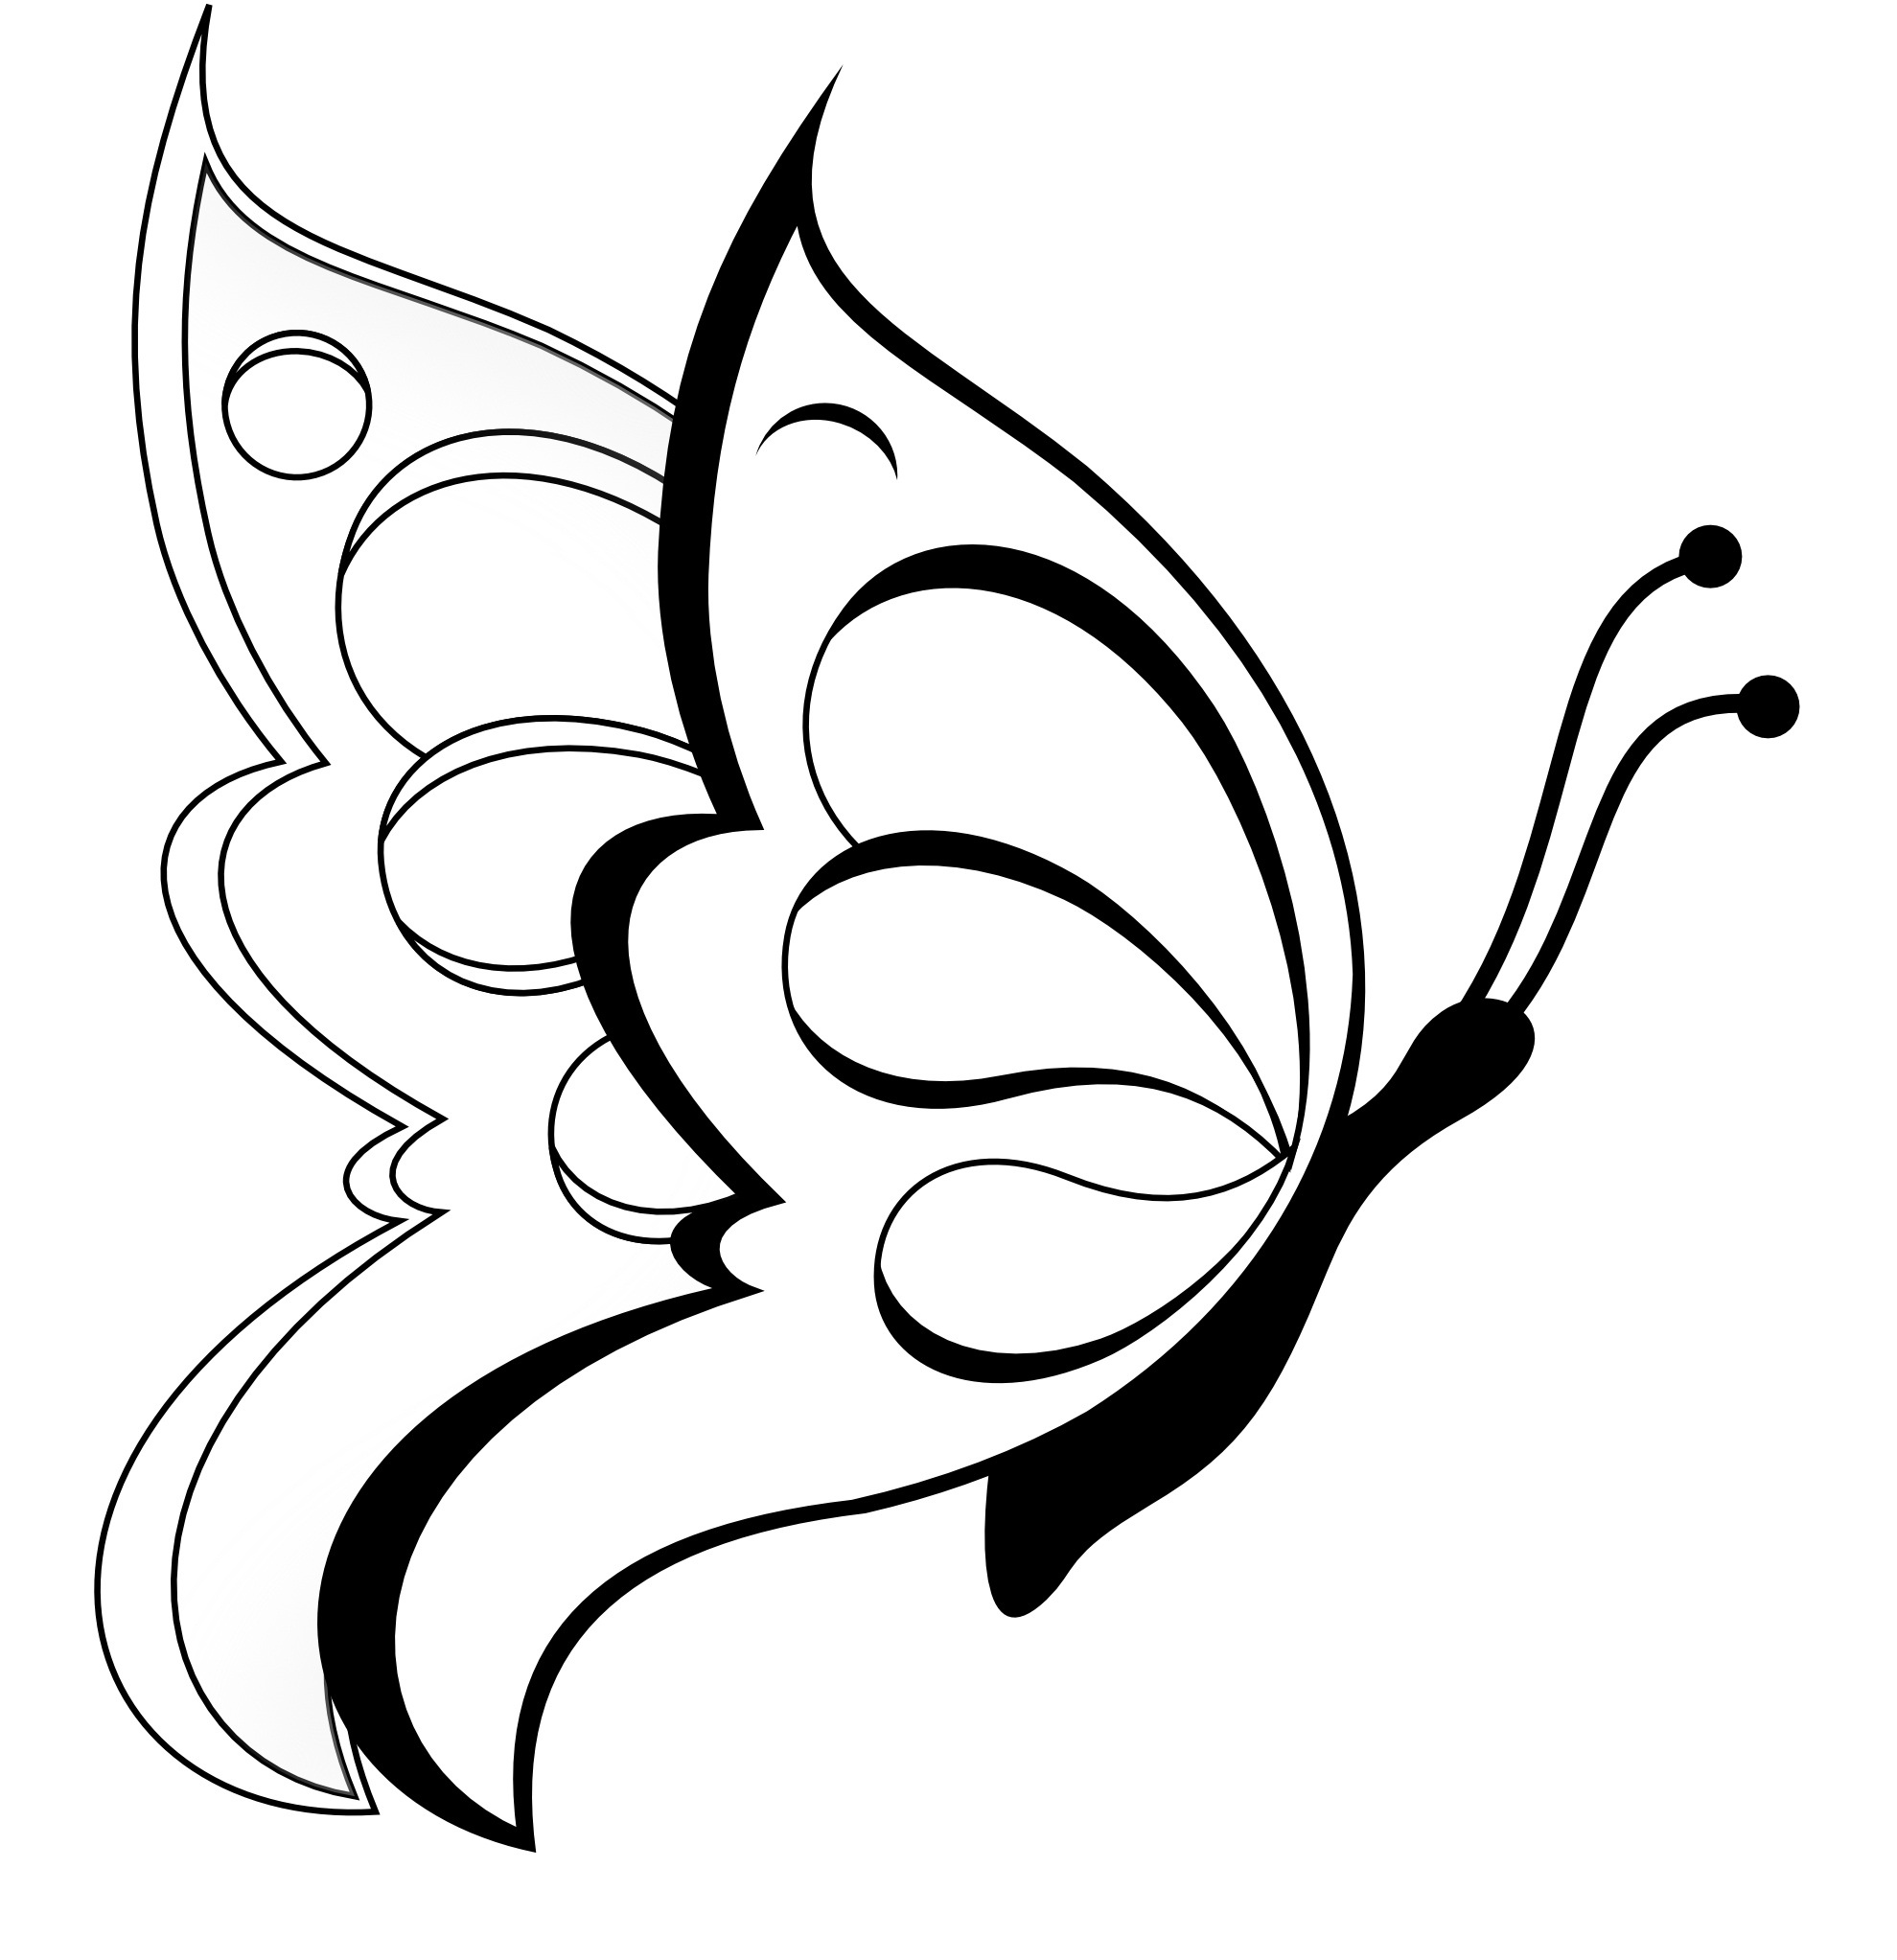 Free Printable Butterfly Coloring Pages For Kids - Free Printable Butterfly Coloring Pages